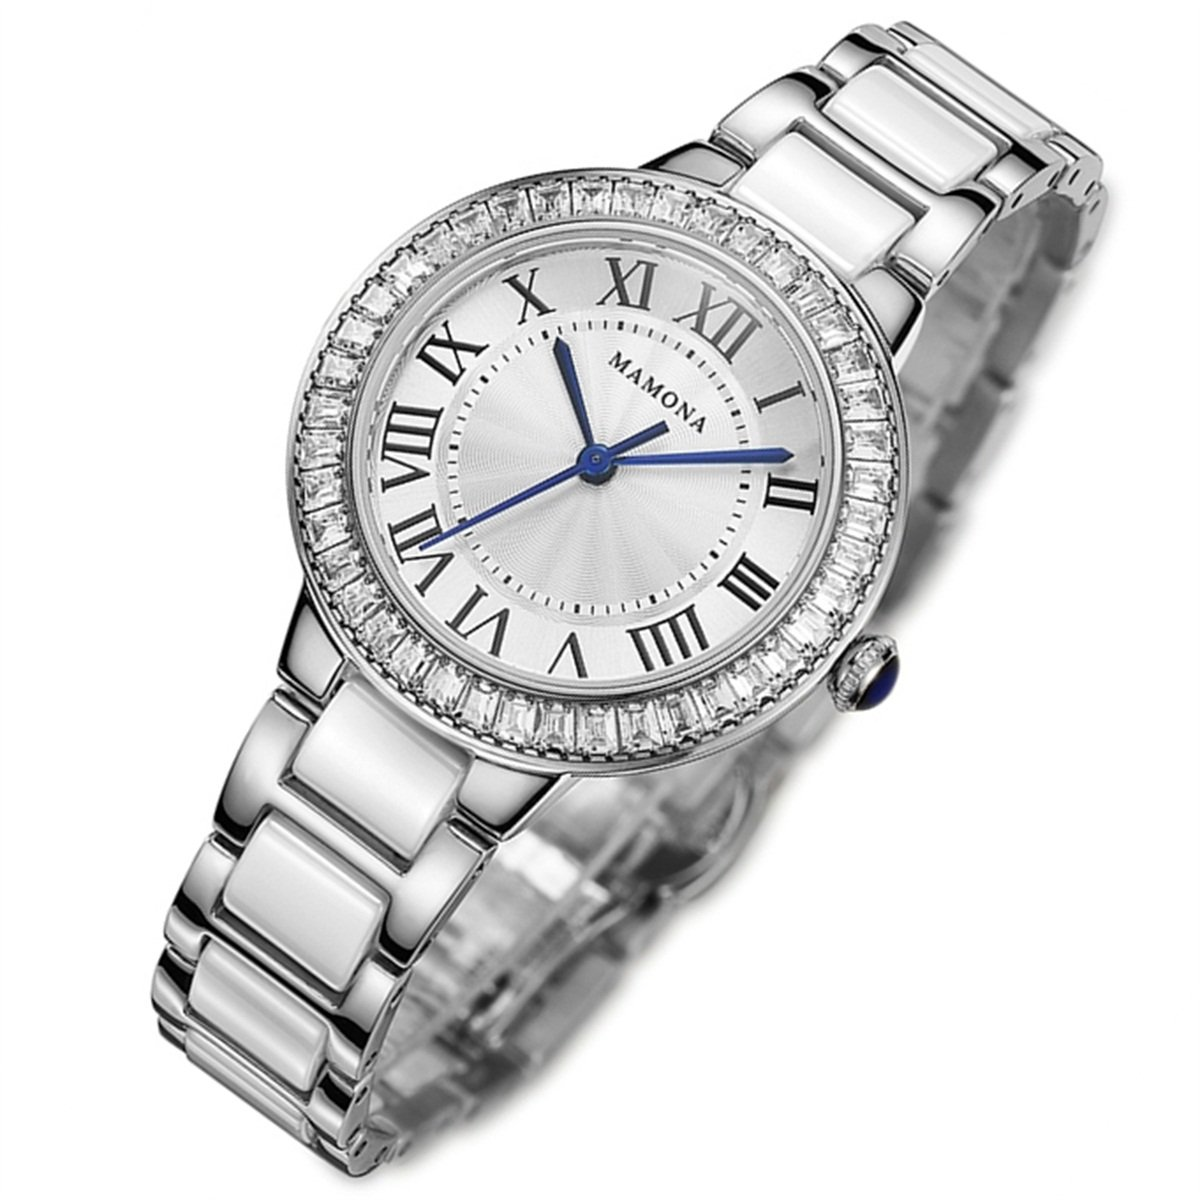 MAMONA Women's Quartz Watch Crystal Accented Ceramic and Stainless Steel White and Silver L68008SR